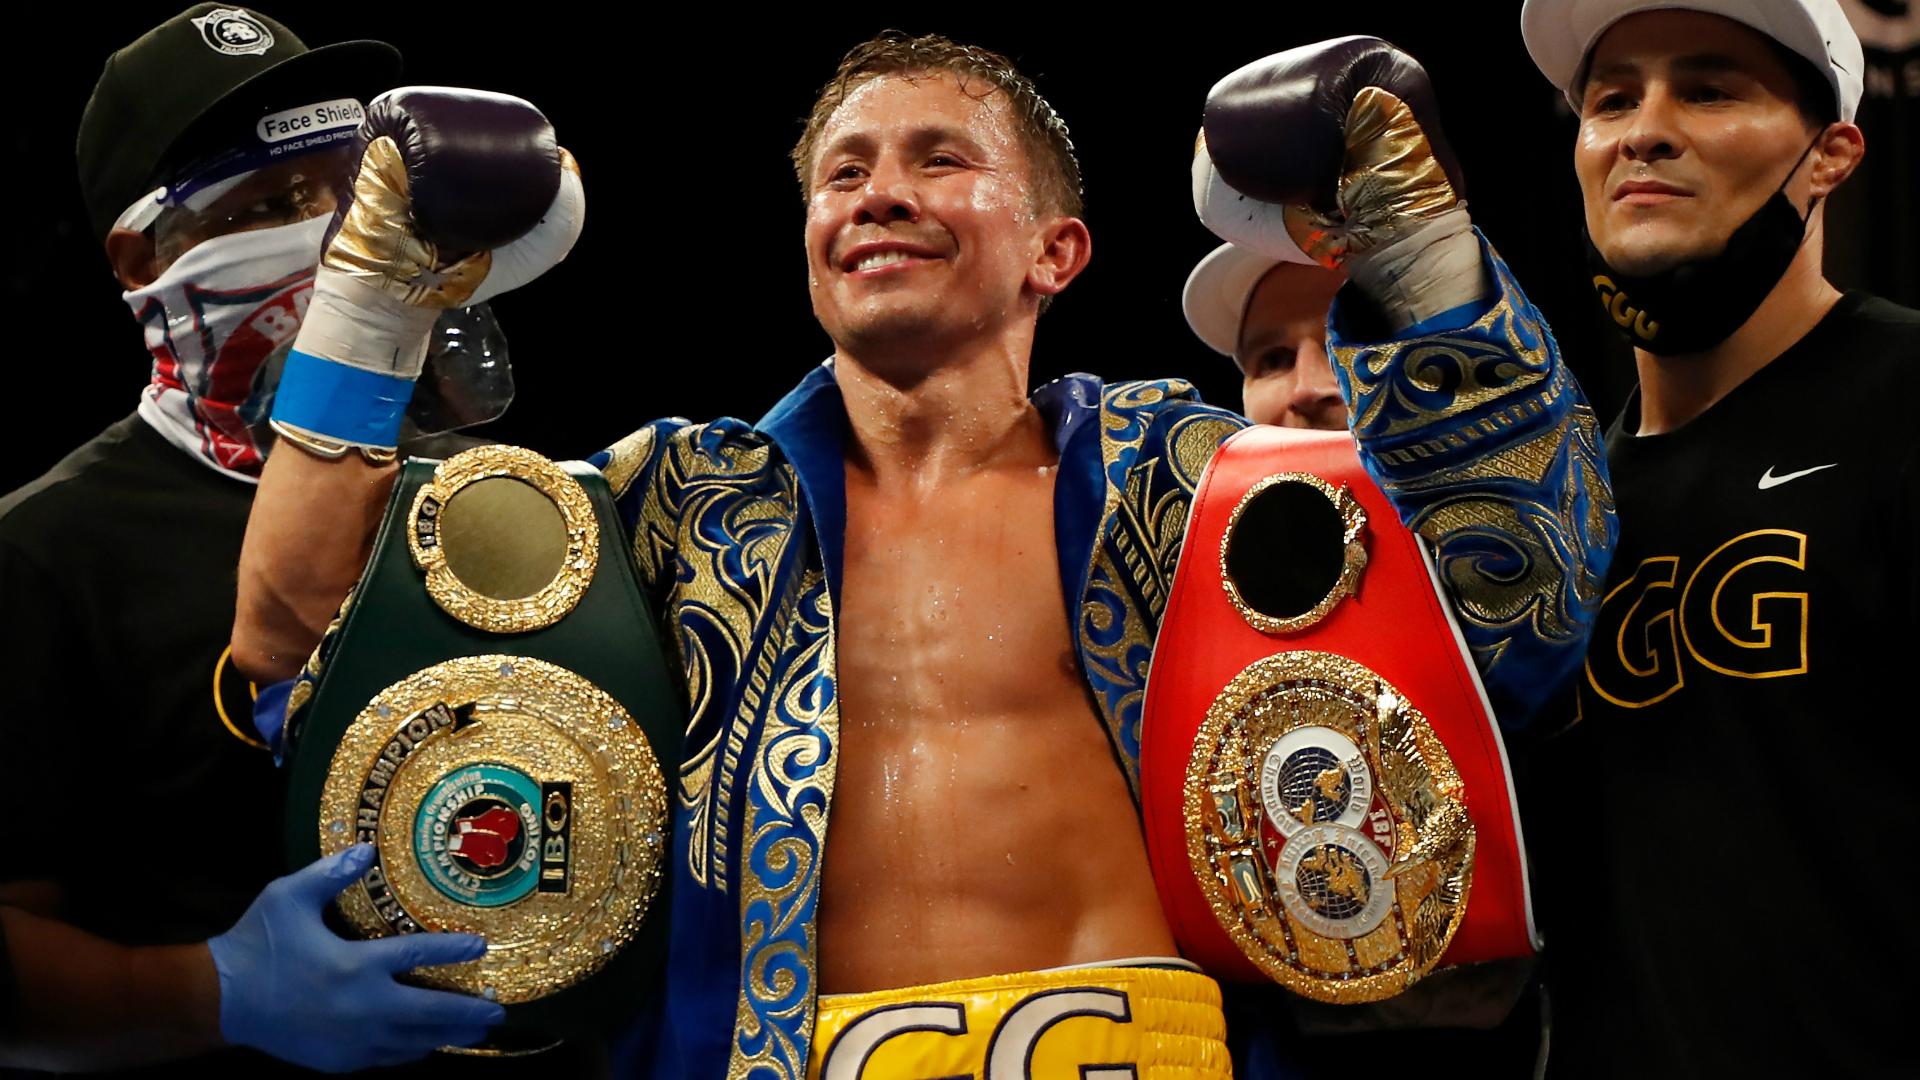 Golovkin 'open for anybody' as Hearn talks up megafight after historic display